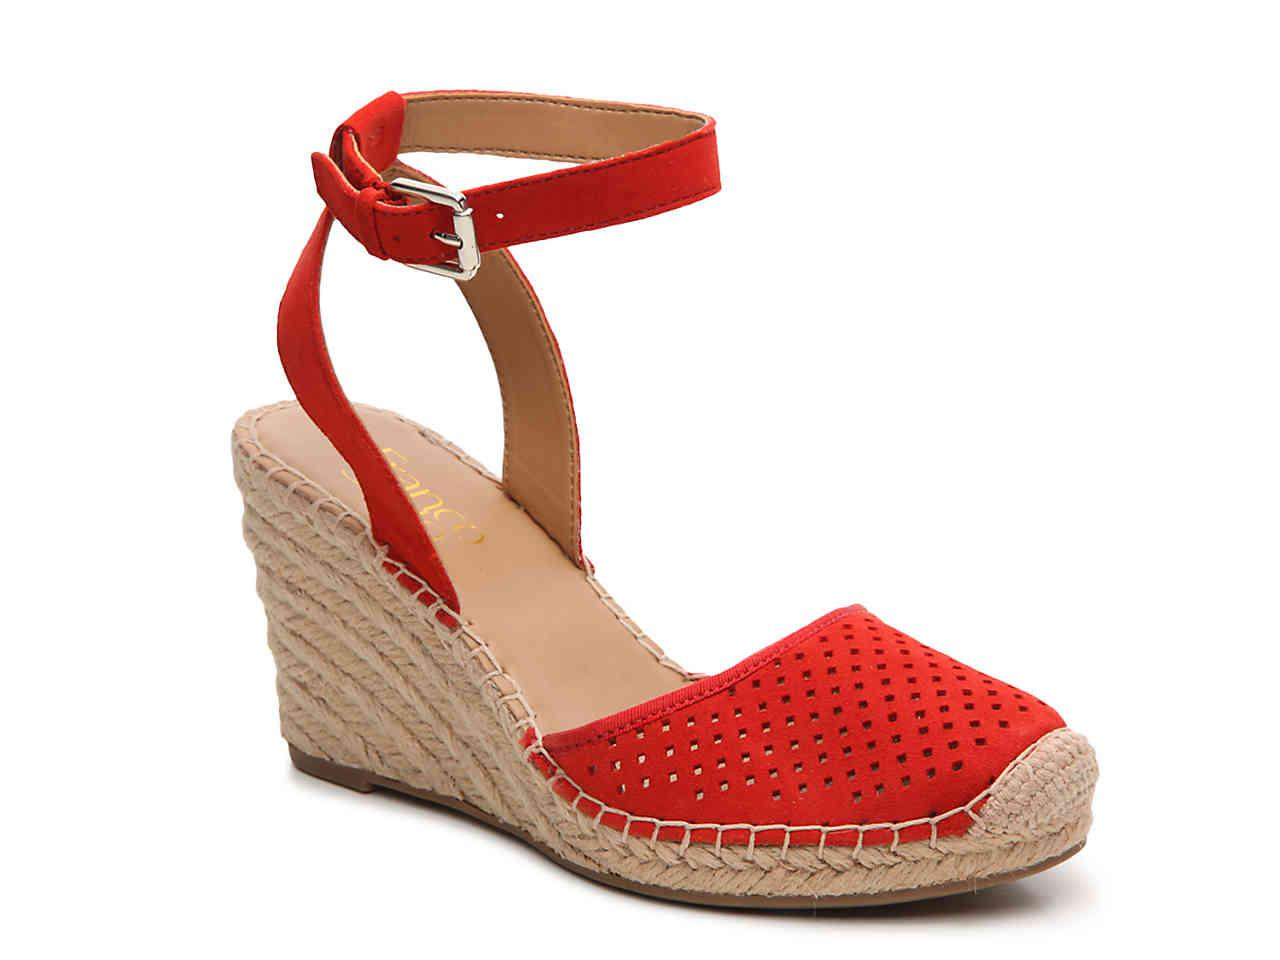 ec067f47e7 Franco Sarto Mirage Wedge Sandal in Red - Lyst